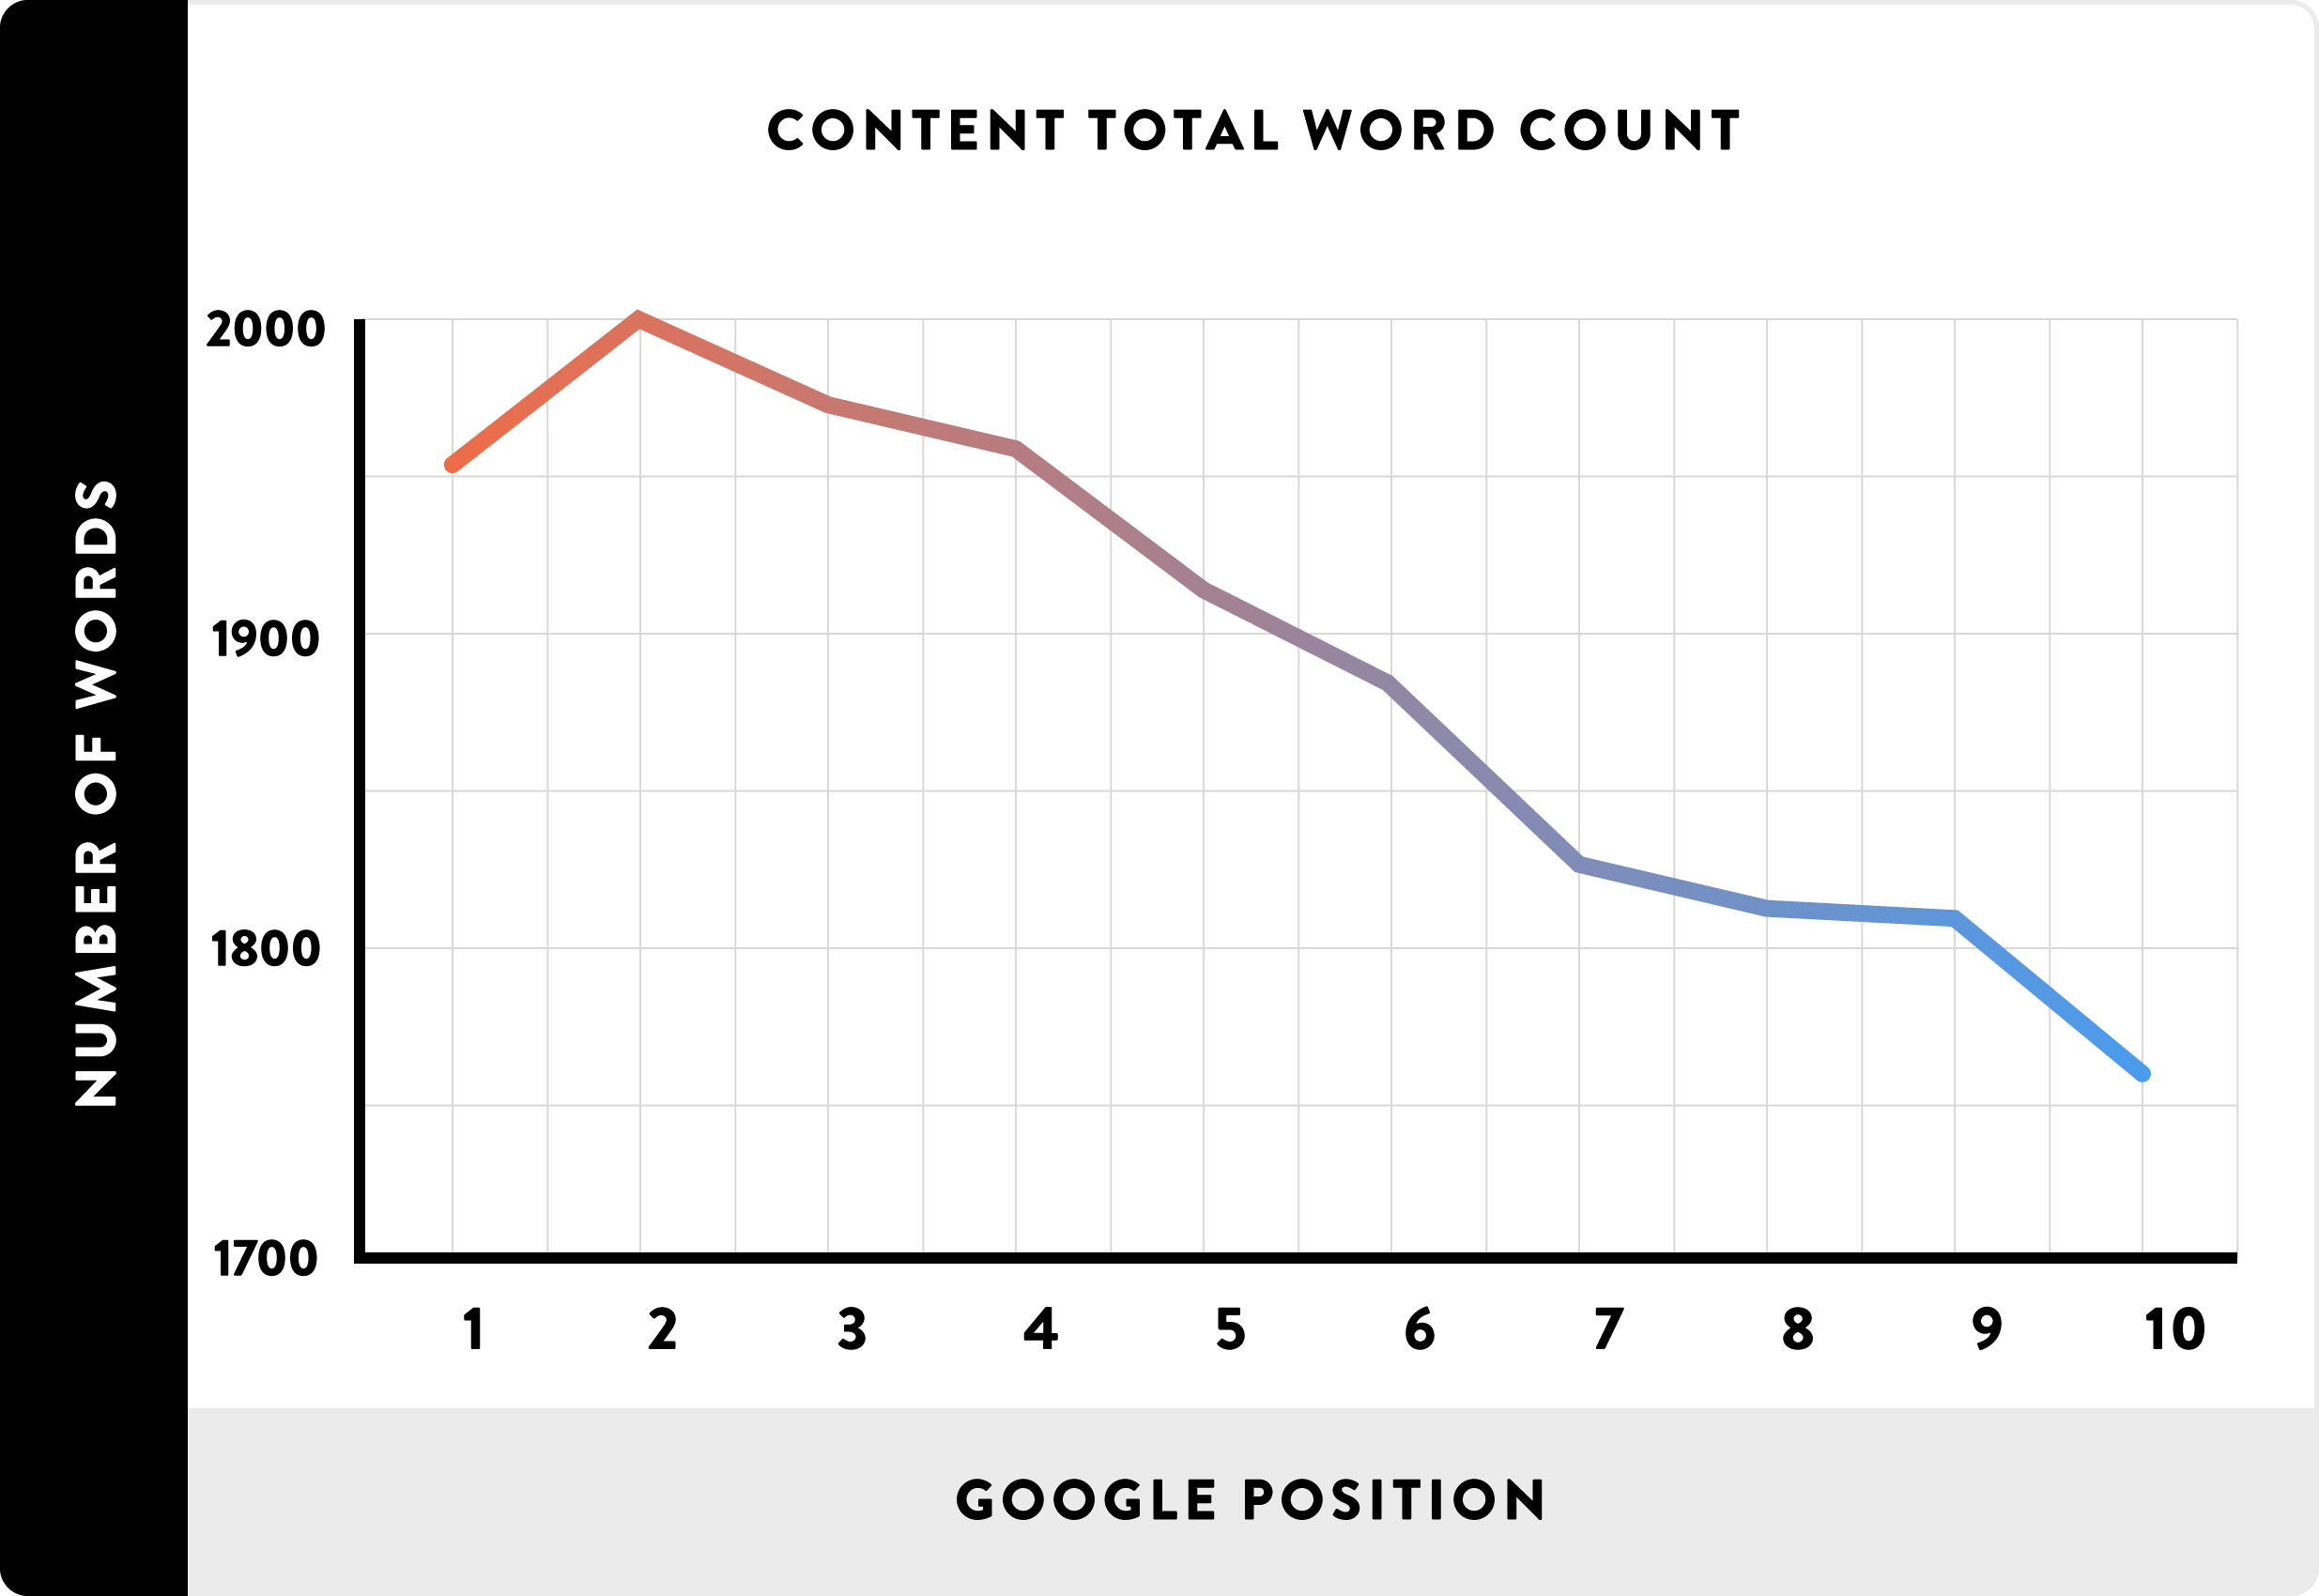 5 Bad SEO Content Tactics You Should Have Abandoned Already